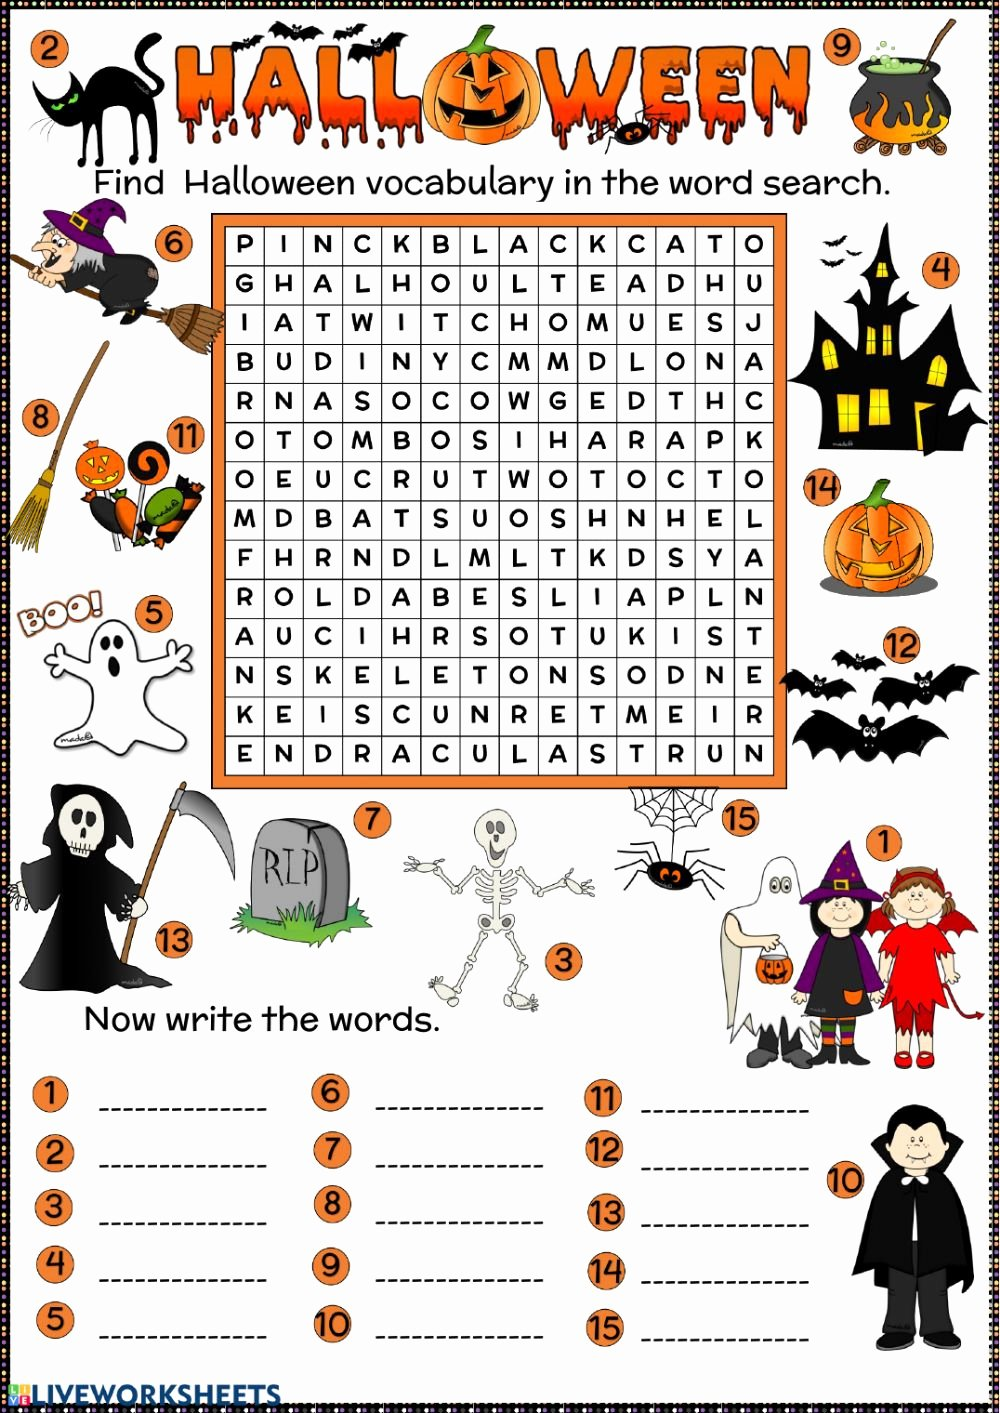 Vocabulary Worksheets for Preschoolers Inspirational Halloween Word Search Interactive Worksheet Esl Vocabulary